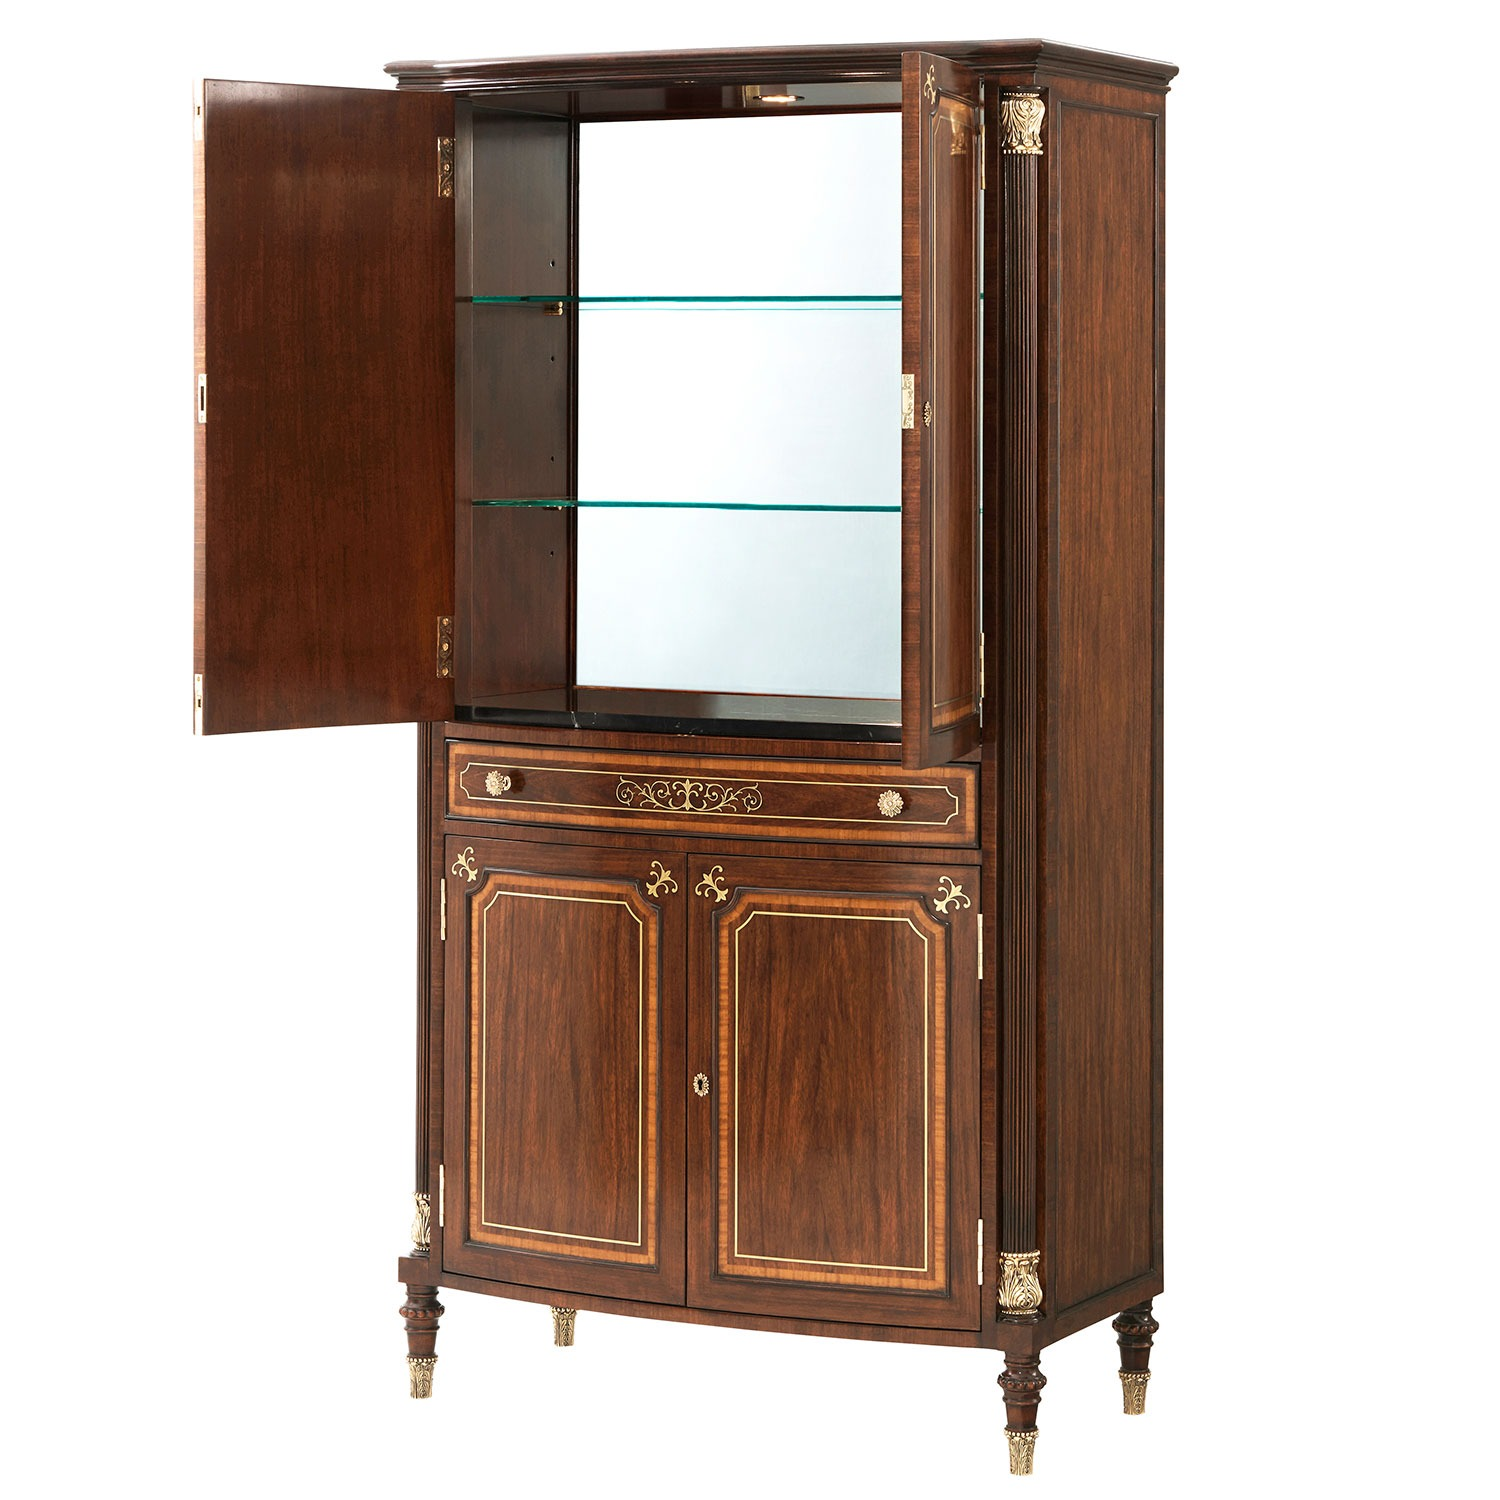 Mahogany Bar or Drinks Cabinet